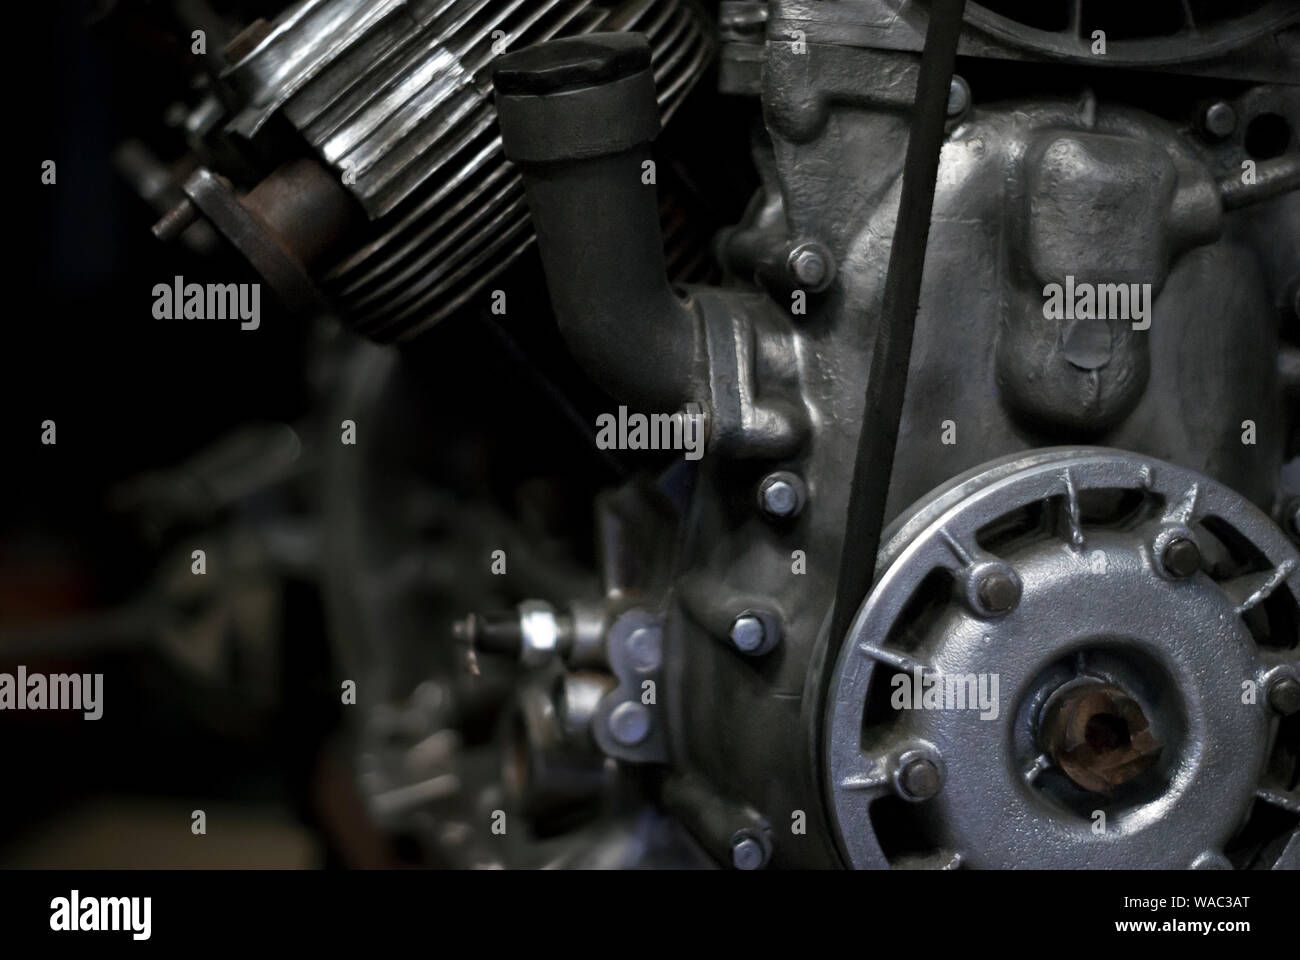 fragment of a semi-assembled internal combustion engine on a dark background Stock Photo